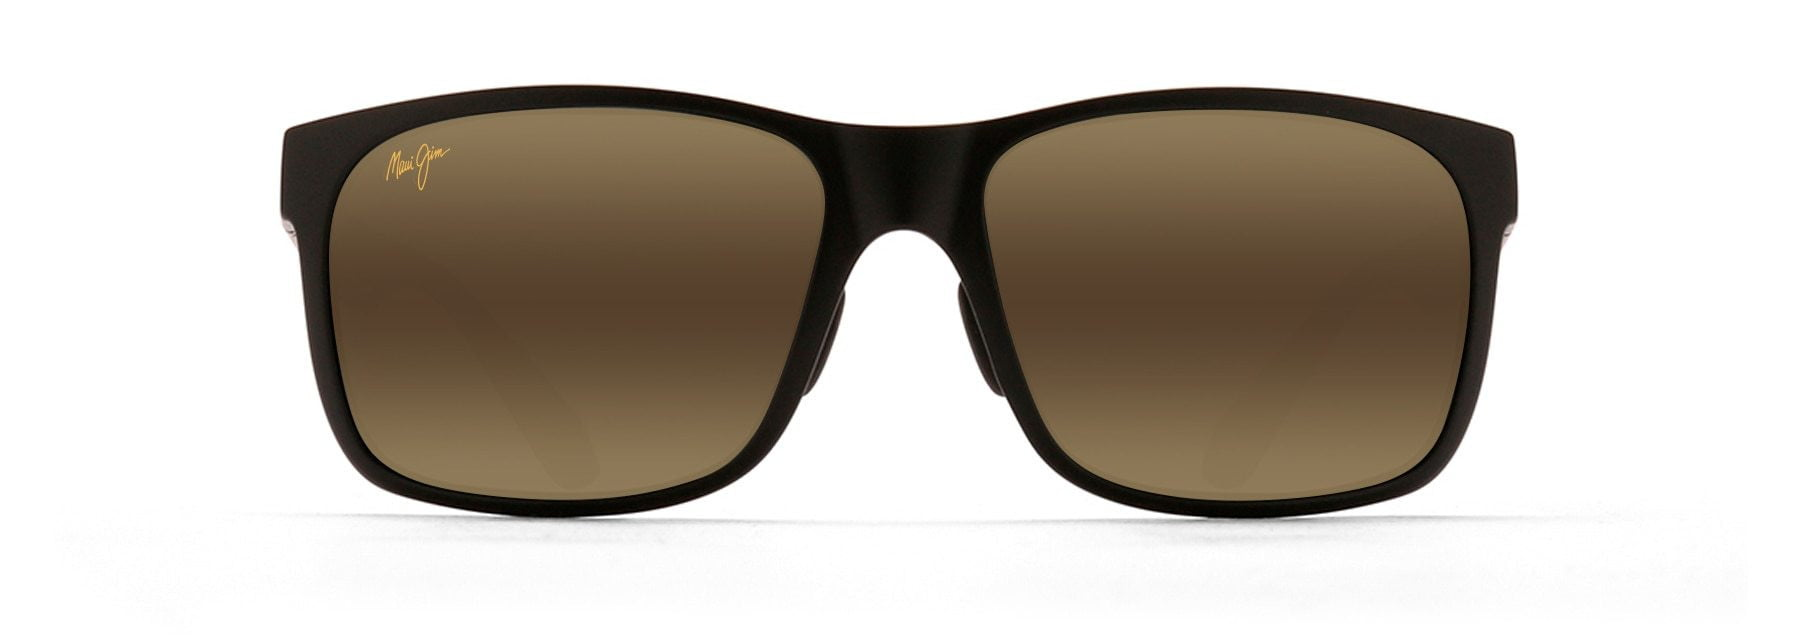 MyMaui Red Sands MM432-026 Sunglasses